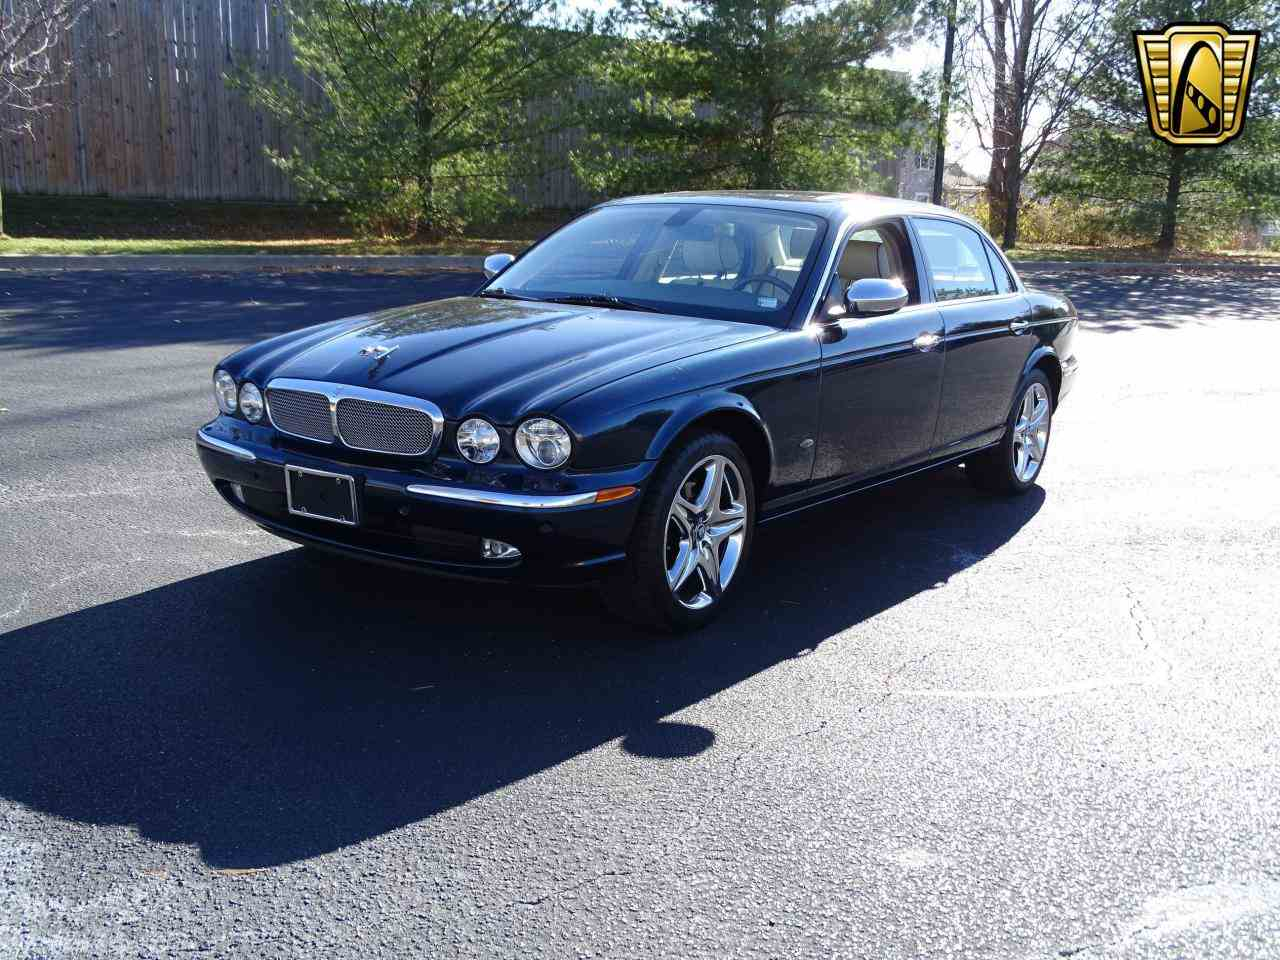 Large Picture of 2006 XJ8 - $14,995.00 Offered by Gateway Classic Cars - St. Louis - MFNT